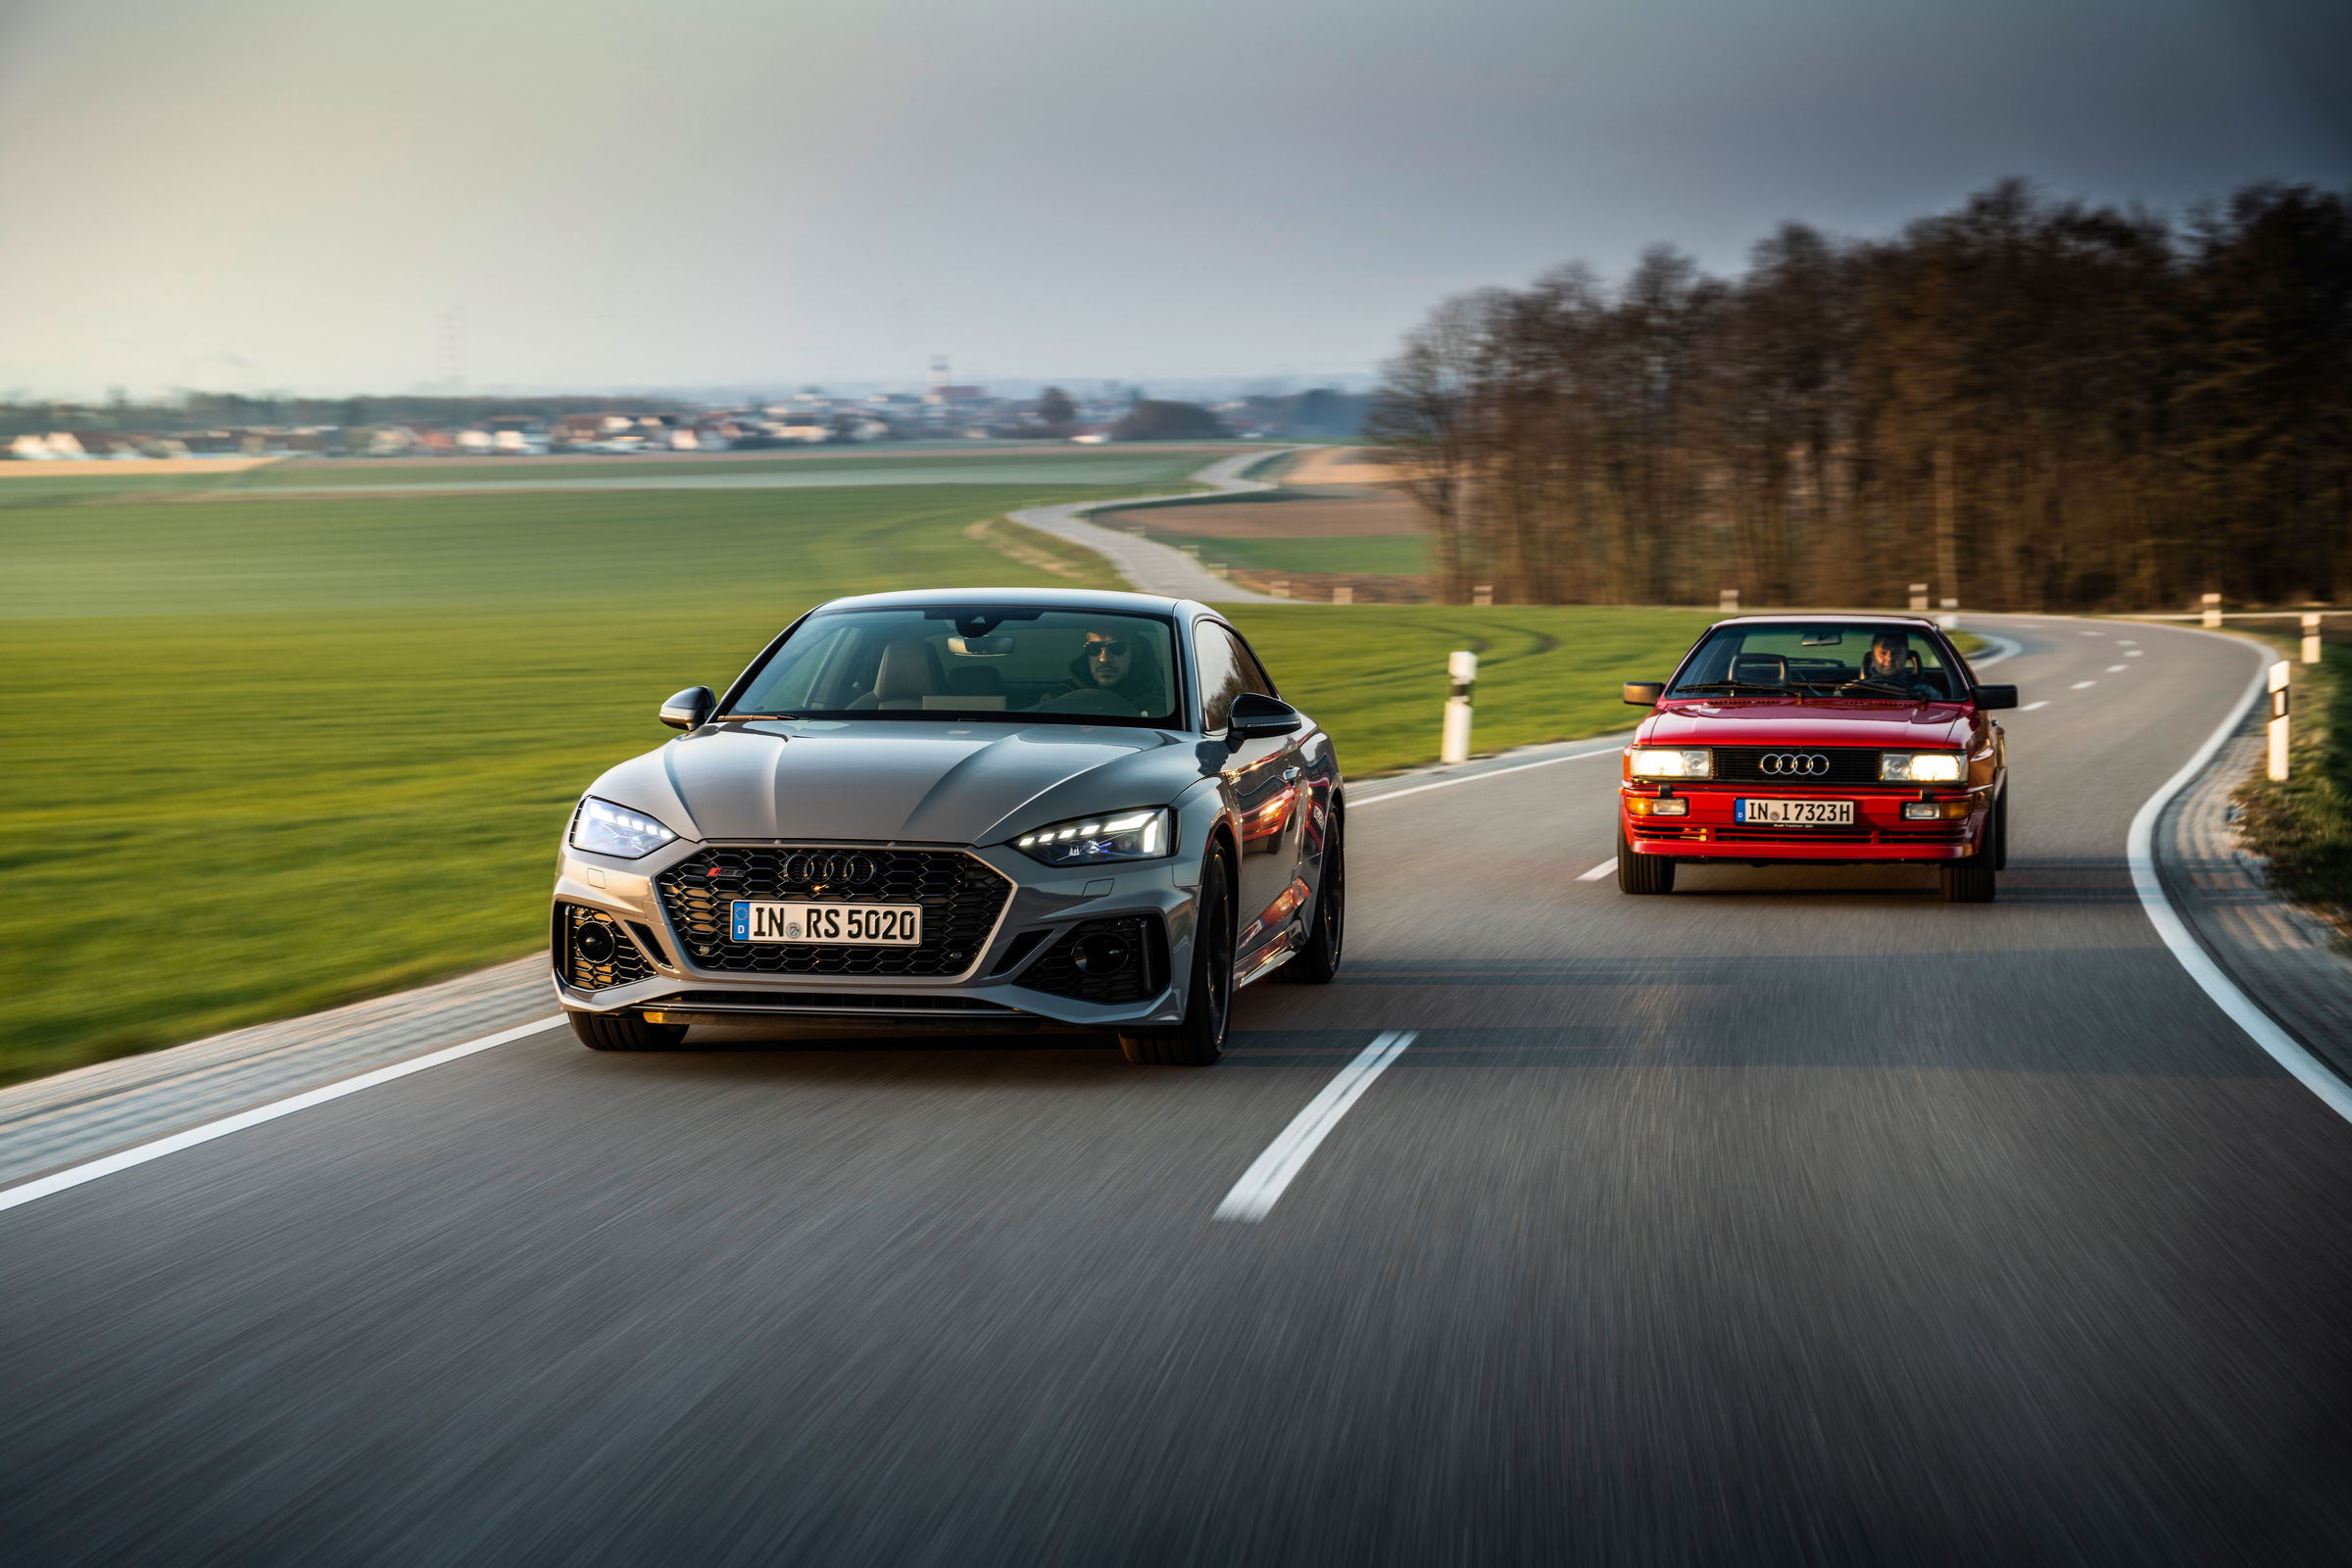 Audi RS 5 meets historic Audi quattro